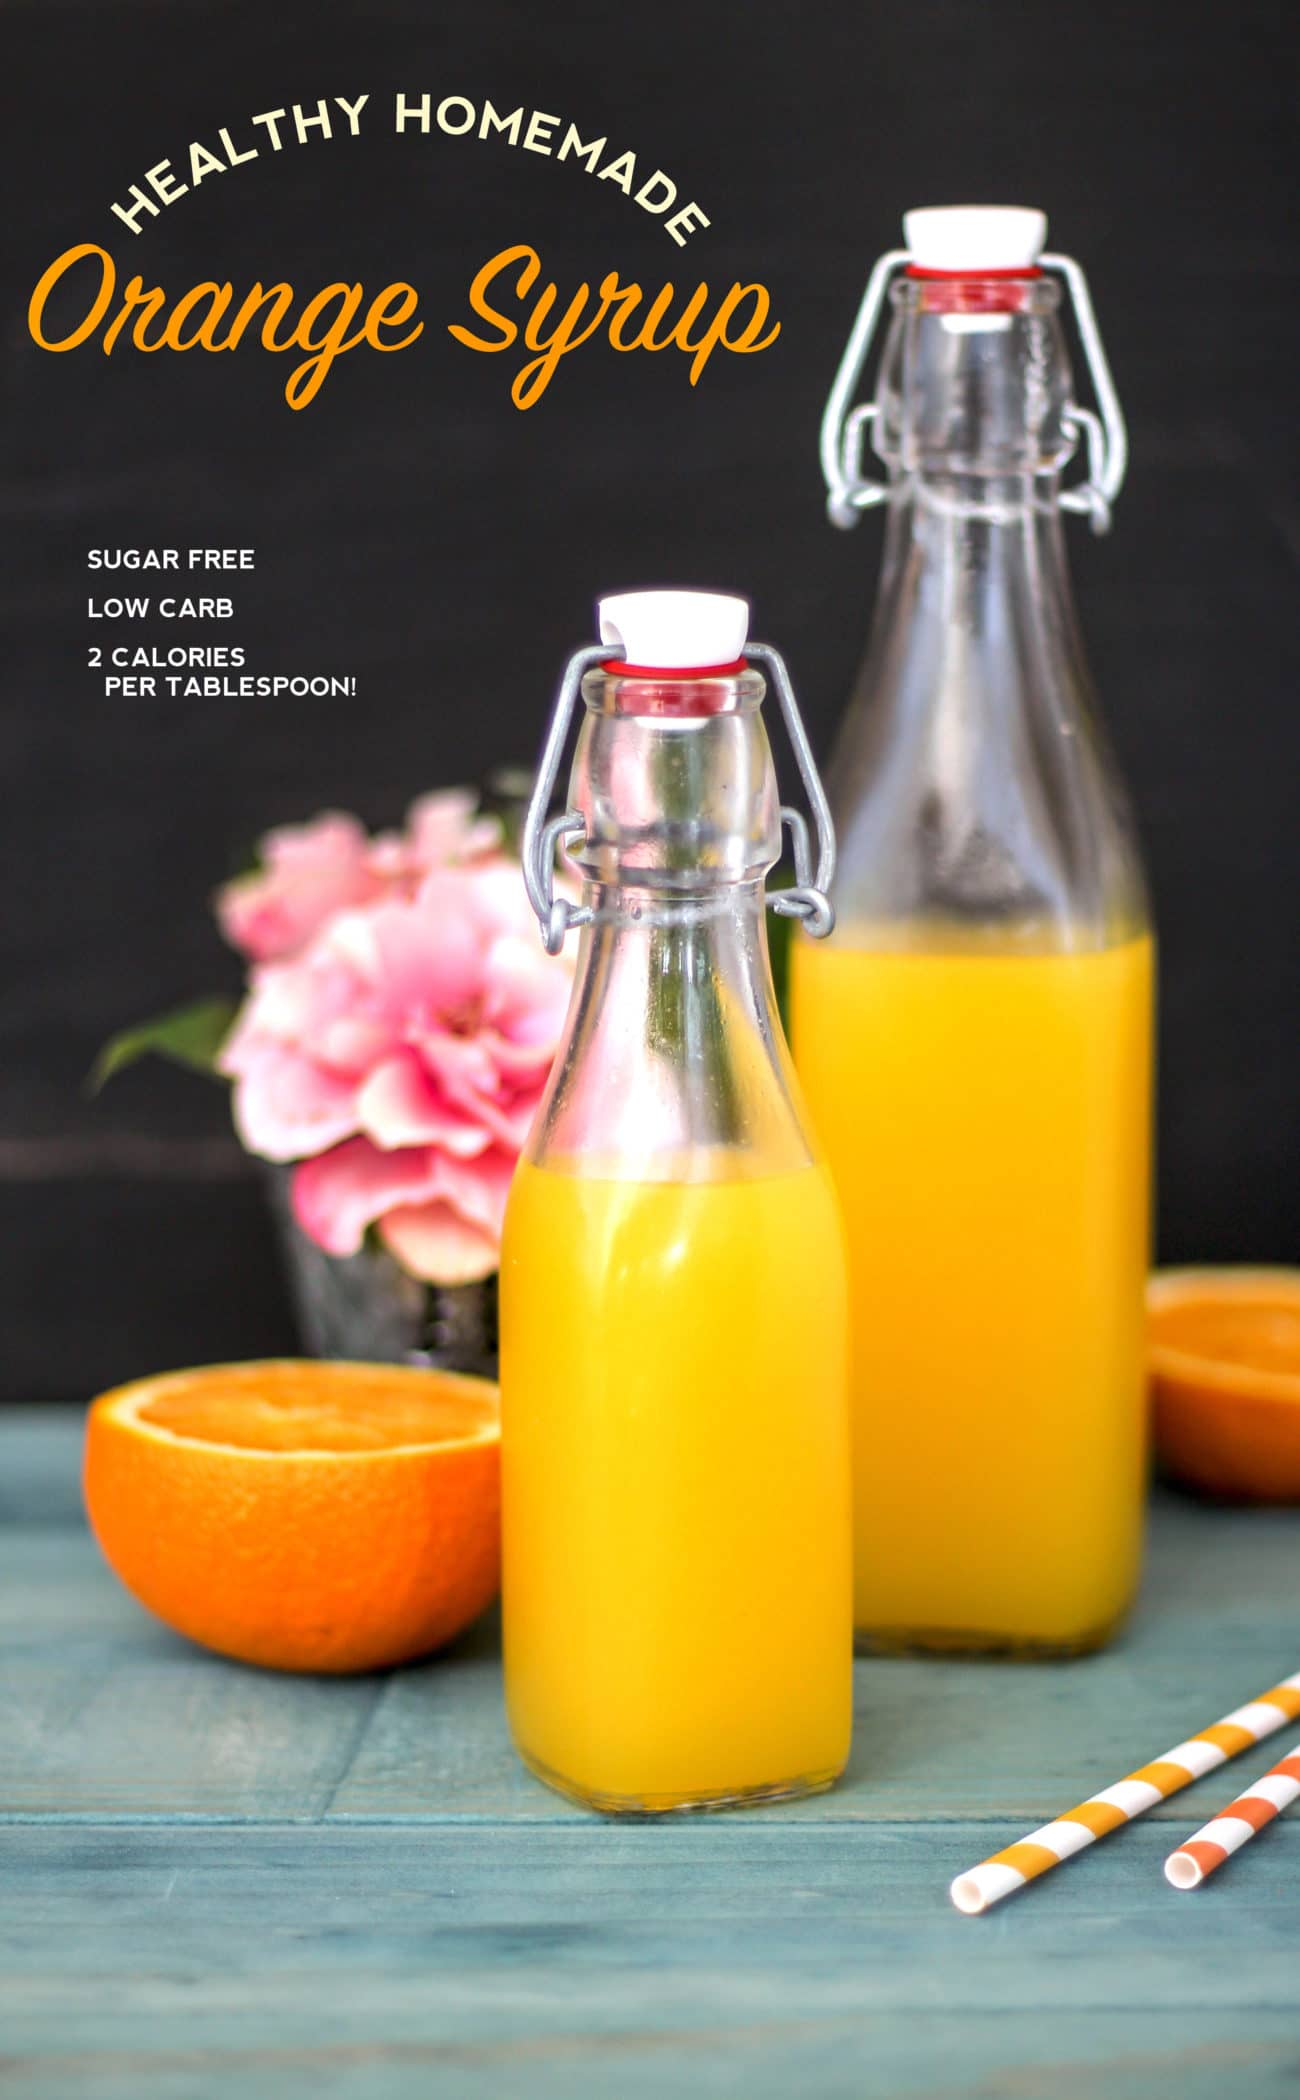 Healthy Homemade Sugar Free Orange Syrup recipe (refined sugar free, low carb, low calorie with only 2 calories per tablespoon!) - Healthy Dessert Recipes at Desserts with Benefits